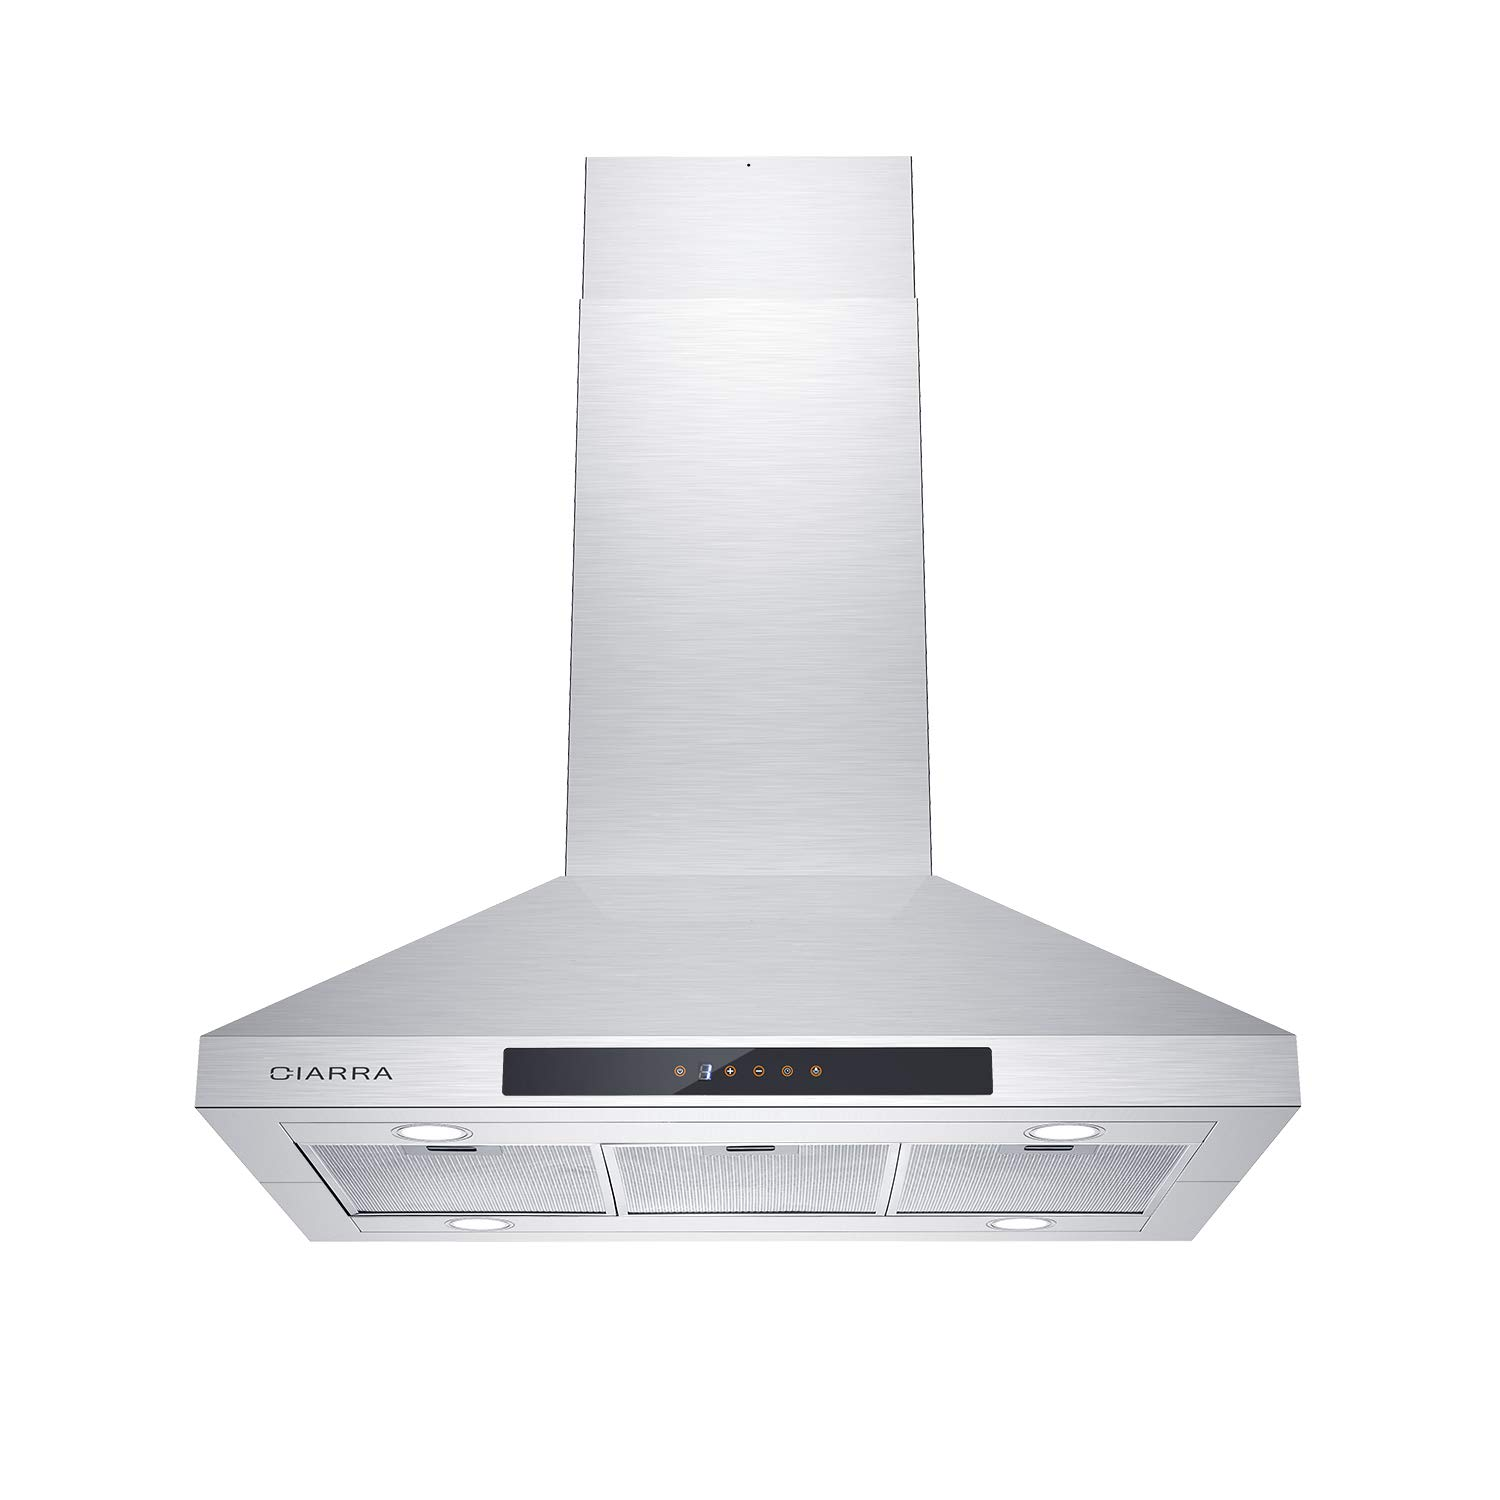 CIARRA CAS90831 Ceiling Mount Hood, 450CFM Stainless Steel Range Hood 36 inch, Ducted/Ductless Convertible Island Stove Vent Hood with 3 Speed Motor & Dishwasher Safe Filter, Touch Control